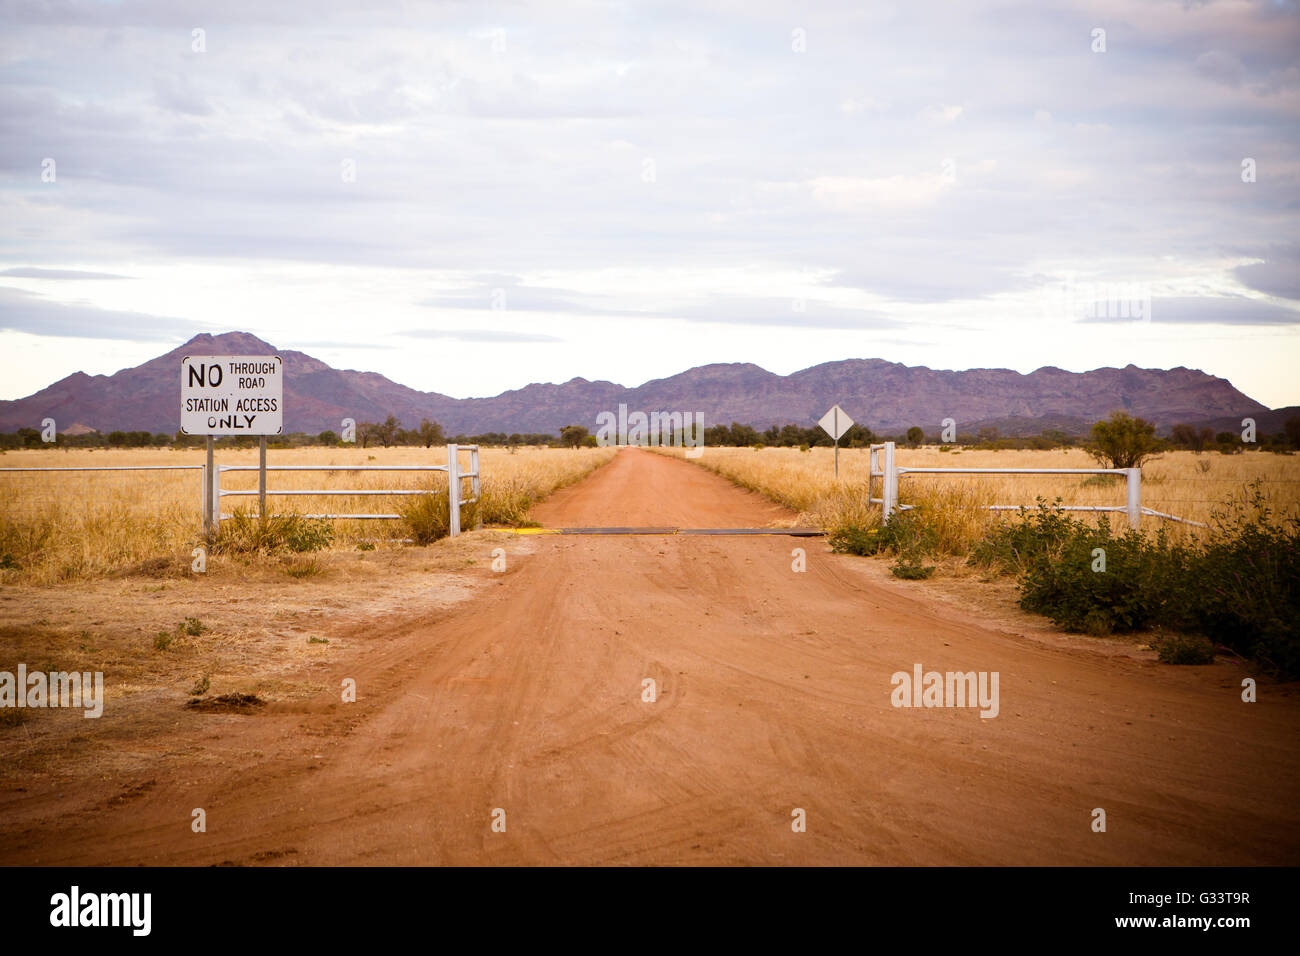 A cattle station near Gemtree in the Northern Territory, Australia - Stock Image